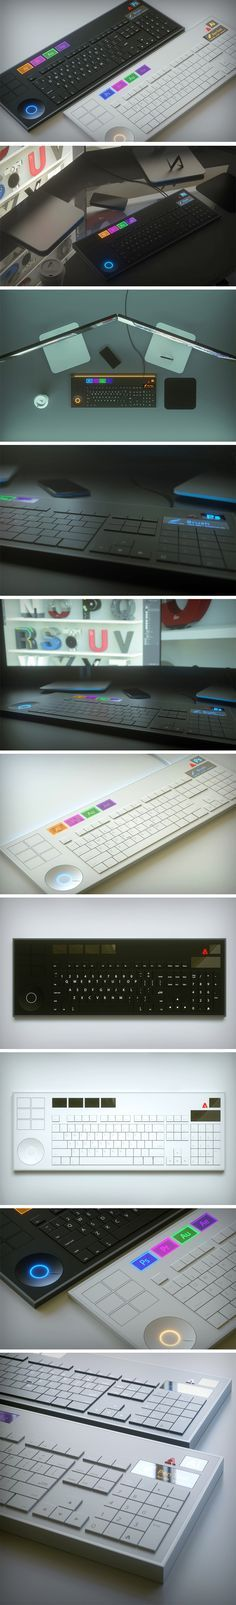 If you work with the Adobe Creative Suite, then it's no surprise that you've dreamt of a keyboard devoted to your creative needs. Vinicius Araújo has designed a gorgeous keyboard to aid in the transition between each program, saving the user hours of switching between Photoshop to Indesign to Illustrator to Lightroom. Accented with stylish LED colors and eye-catching material changes, the Adobe Keyboard is the designers' must have.